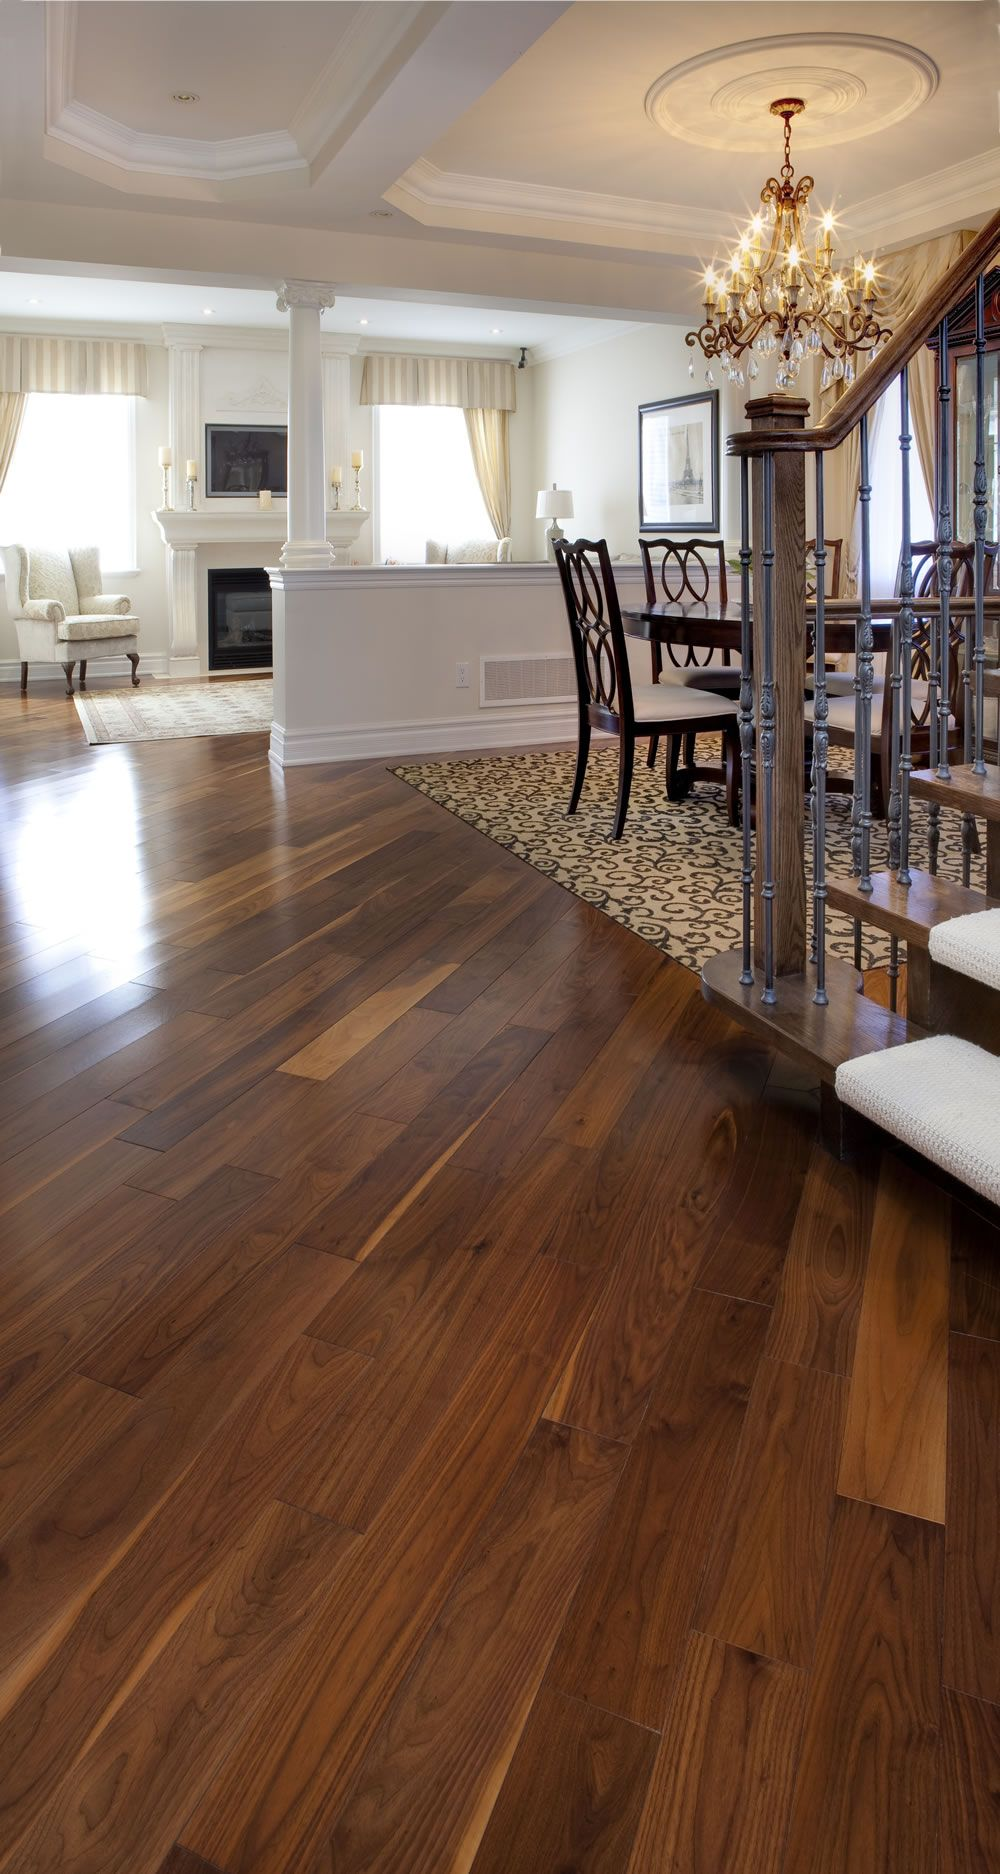 Wood Floors Design Ideas Pictures Remodel And Decor Home House Design New Homes